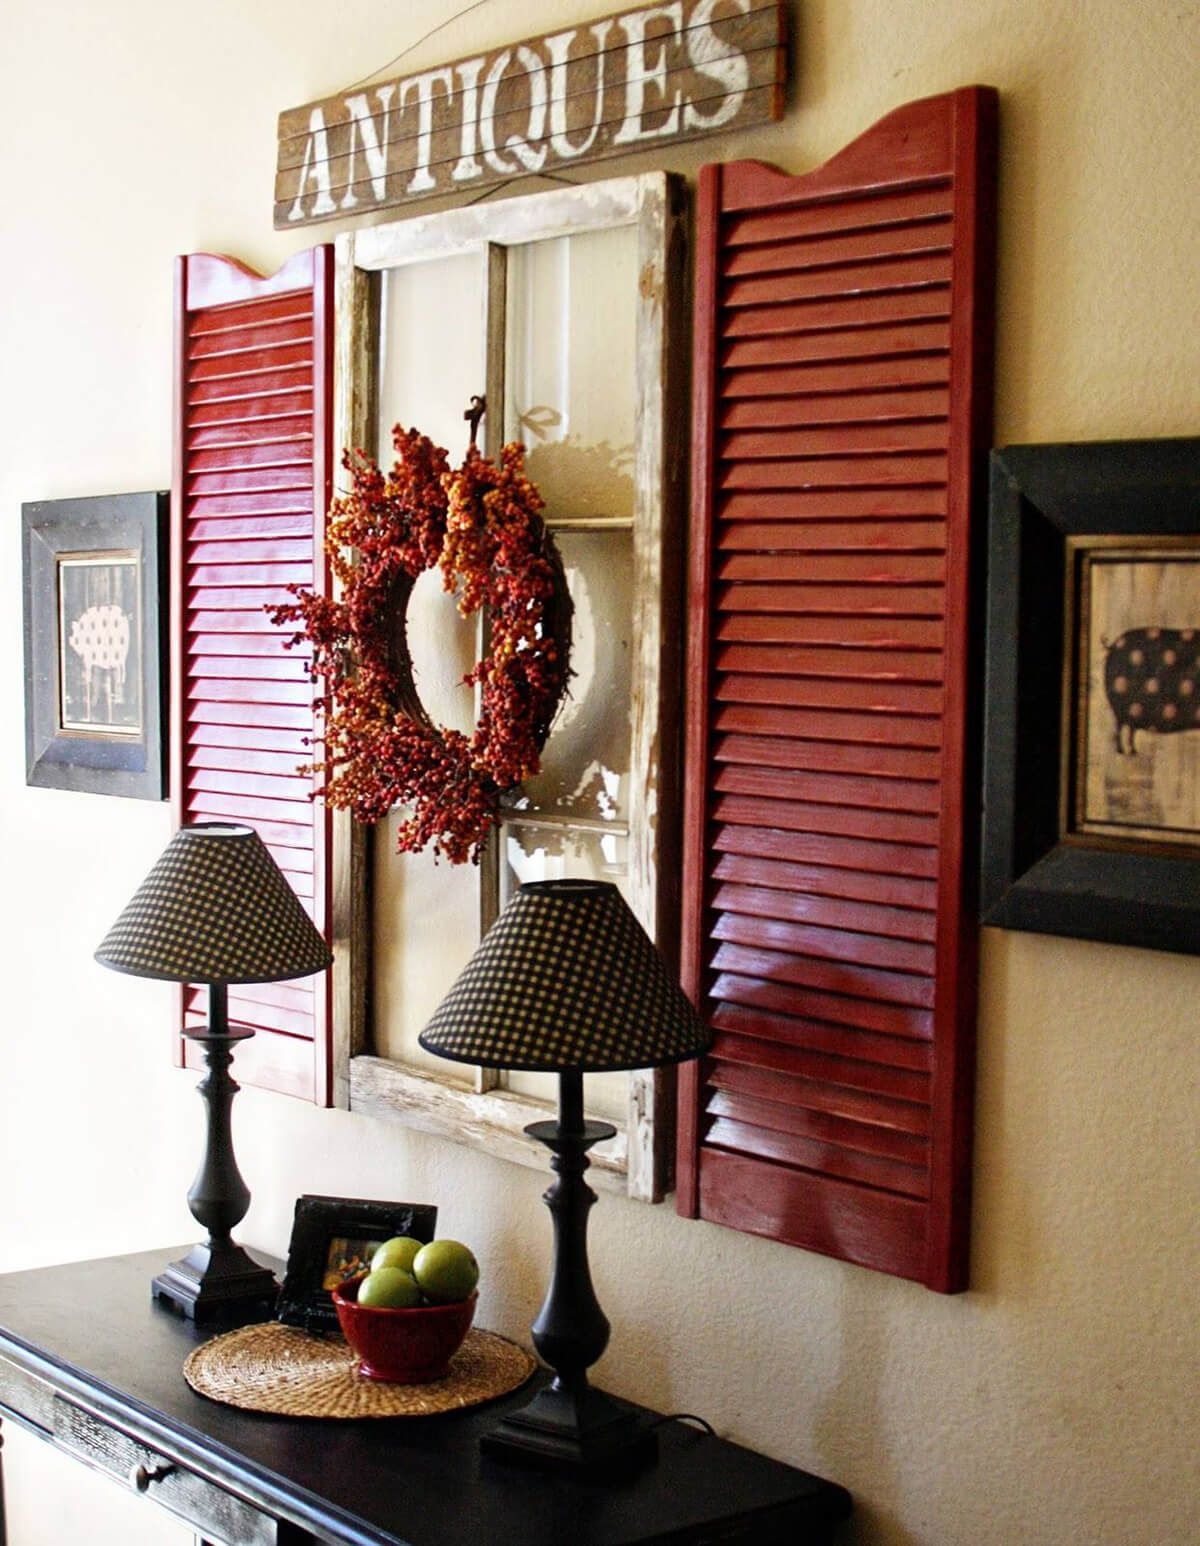 6 pane window ideas   ways decorating with old shutters can make your home charming